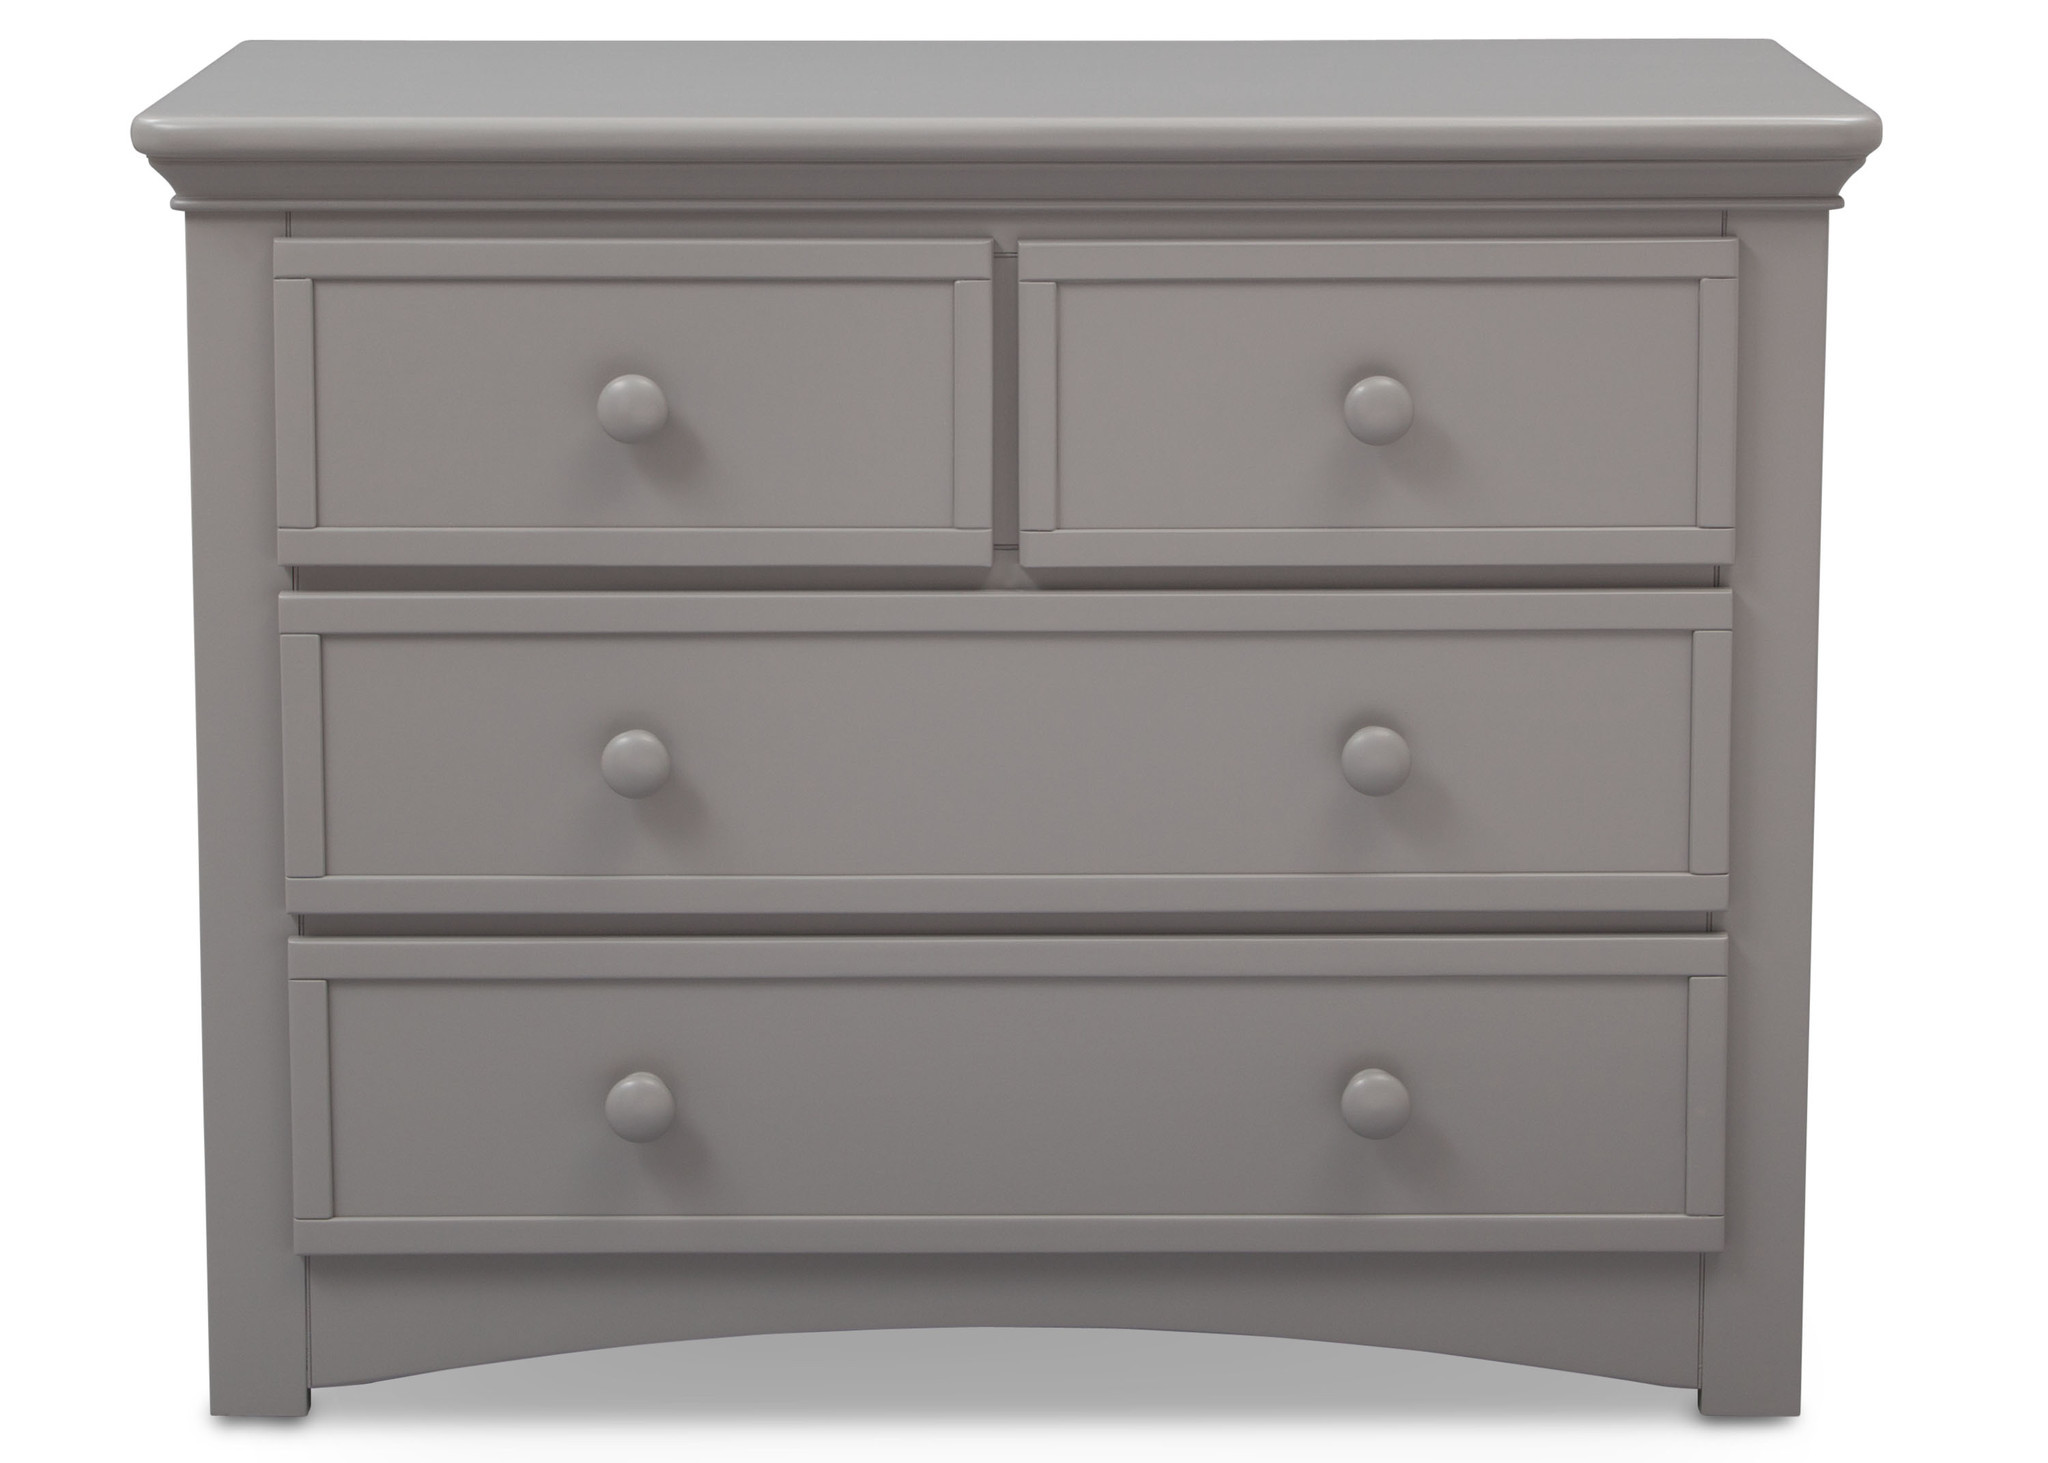 Amusing 4 Drawer Dresser With Beautiful Knob Pull Drawers For Home Furniture Ideas